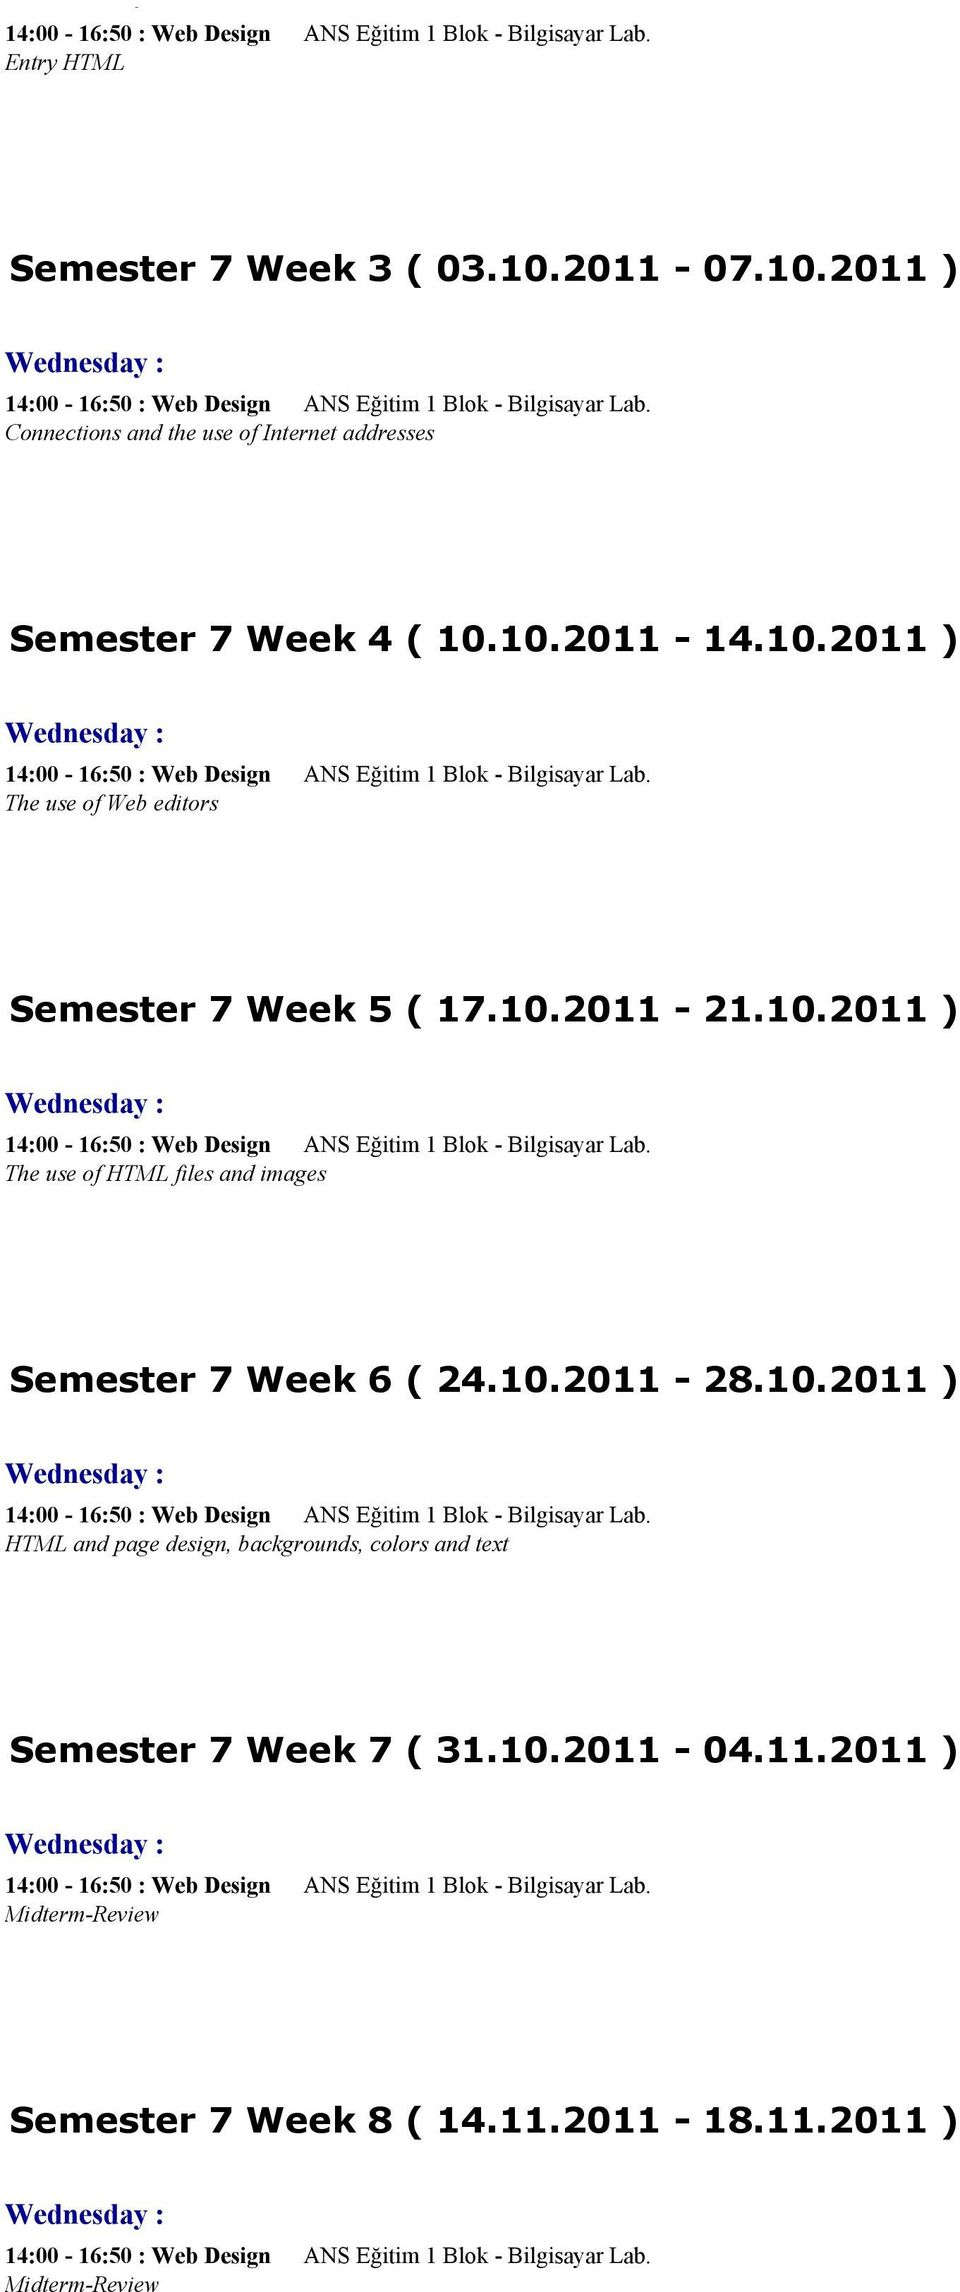 10.2011 ) 14:00-16:50 : Web Design ANS Eğitim 1 Blok - Bilgisayar Lab. The use of HTML files and images Semester 7 Week 6 ( 24.10.2011-28.10.2011 ) 14:00-16:50 : Web Design ANS Eğitim 1 Blok - Bilgisayar Lab. HTML and page design, backgrounds, colors and text Semester 7 Week 7 ( 31.